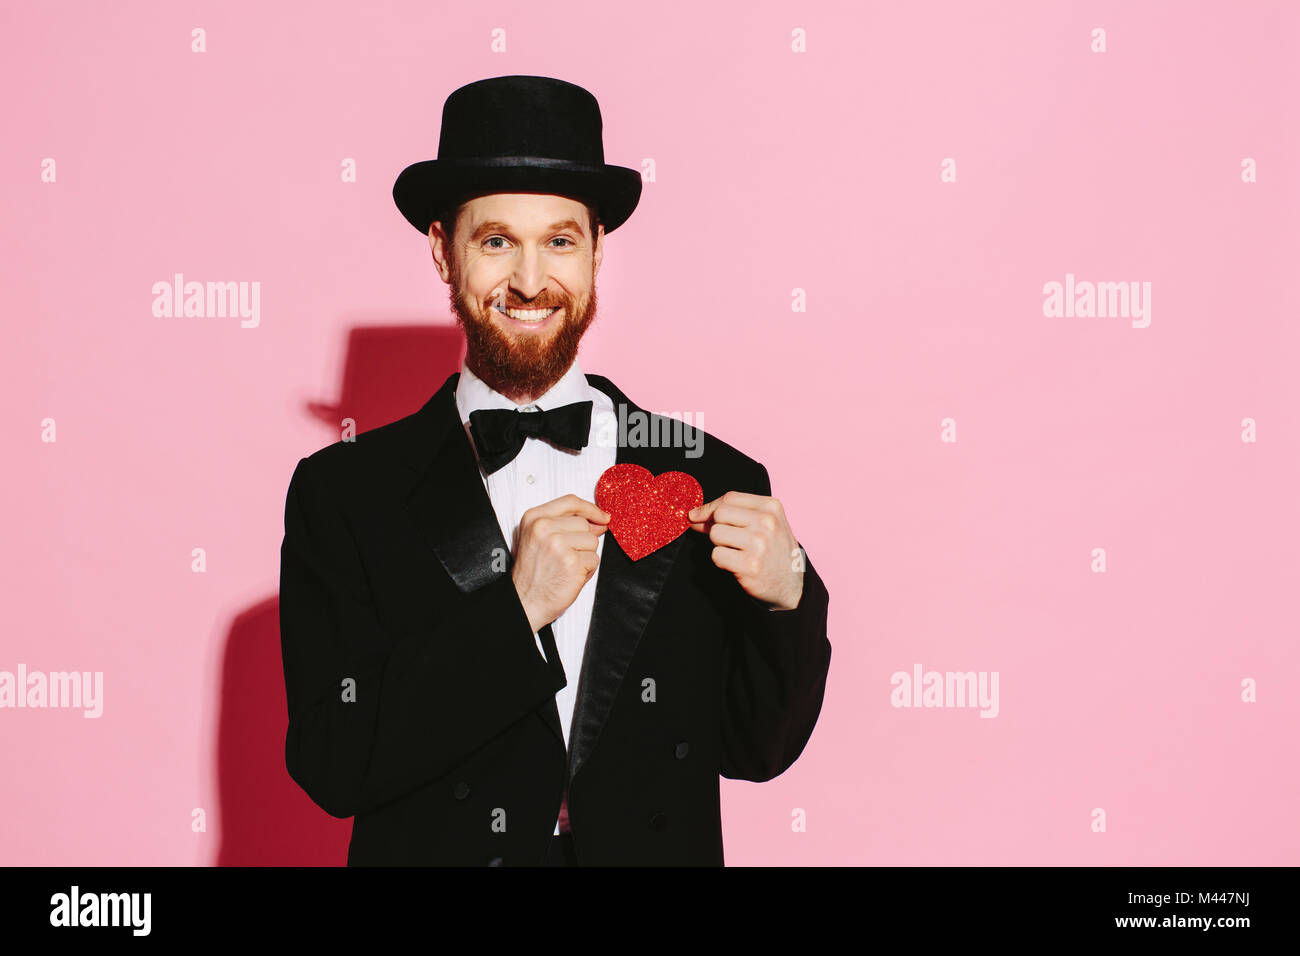 Smiling man in a tuxedo and top hat holding a red heart - Stock Image